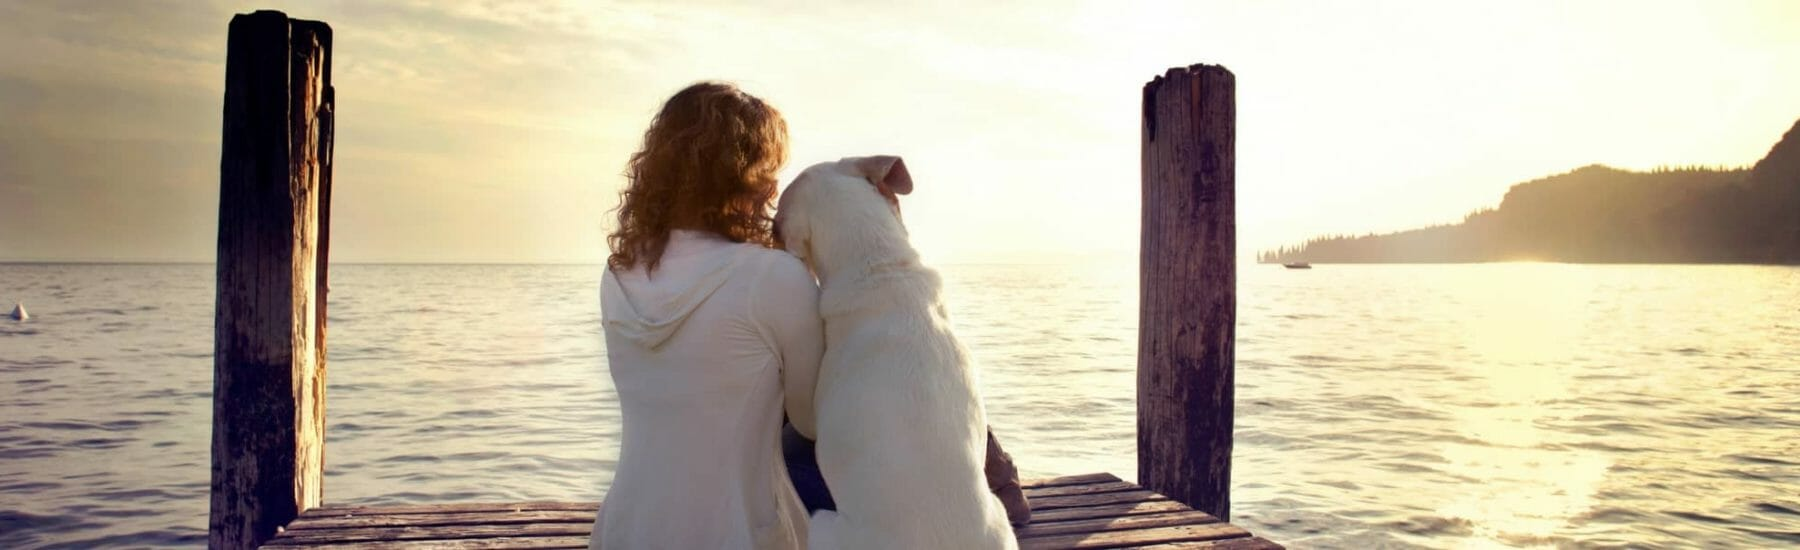 Dog and owner sitting on dock looking at lake